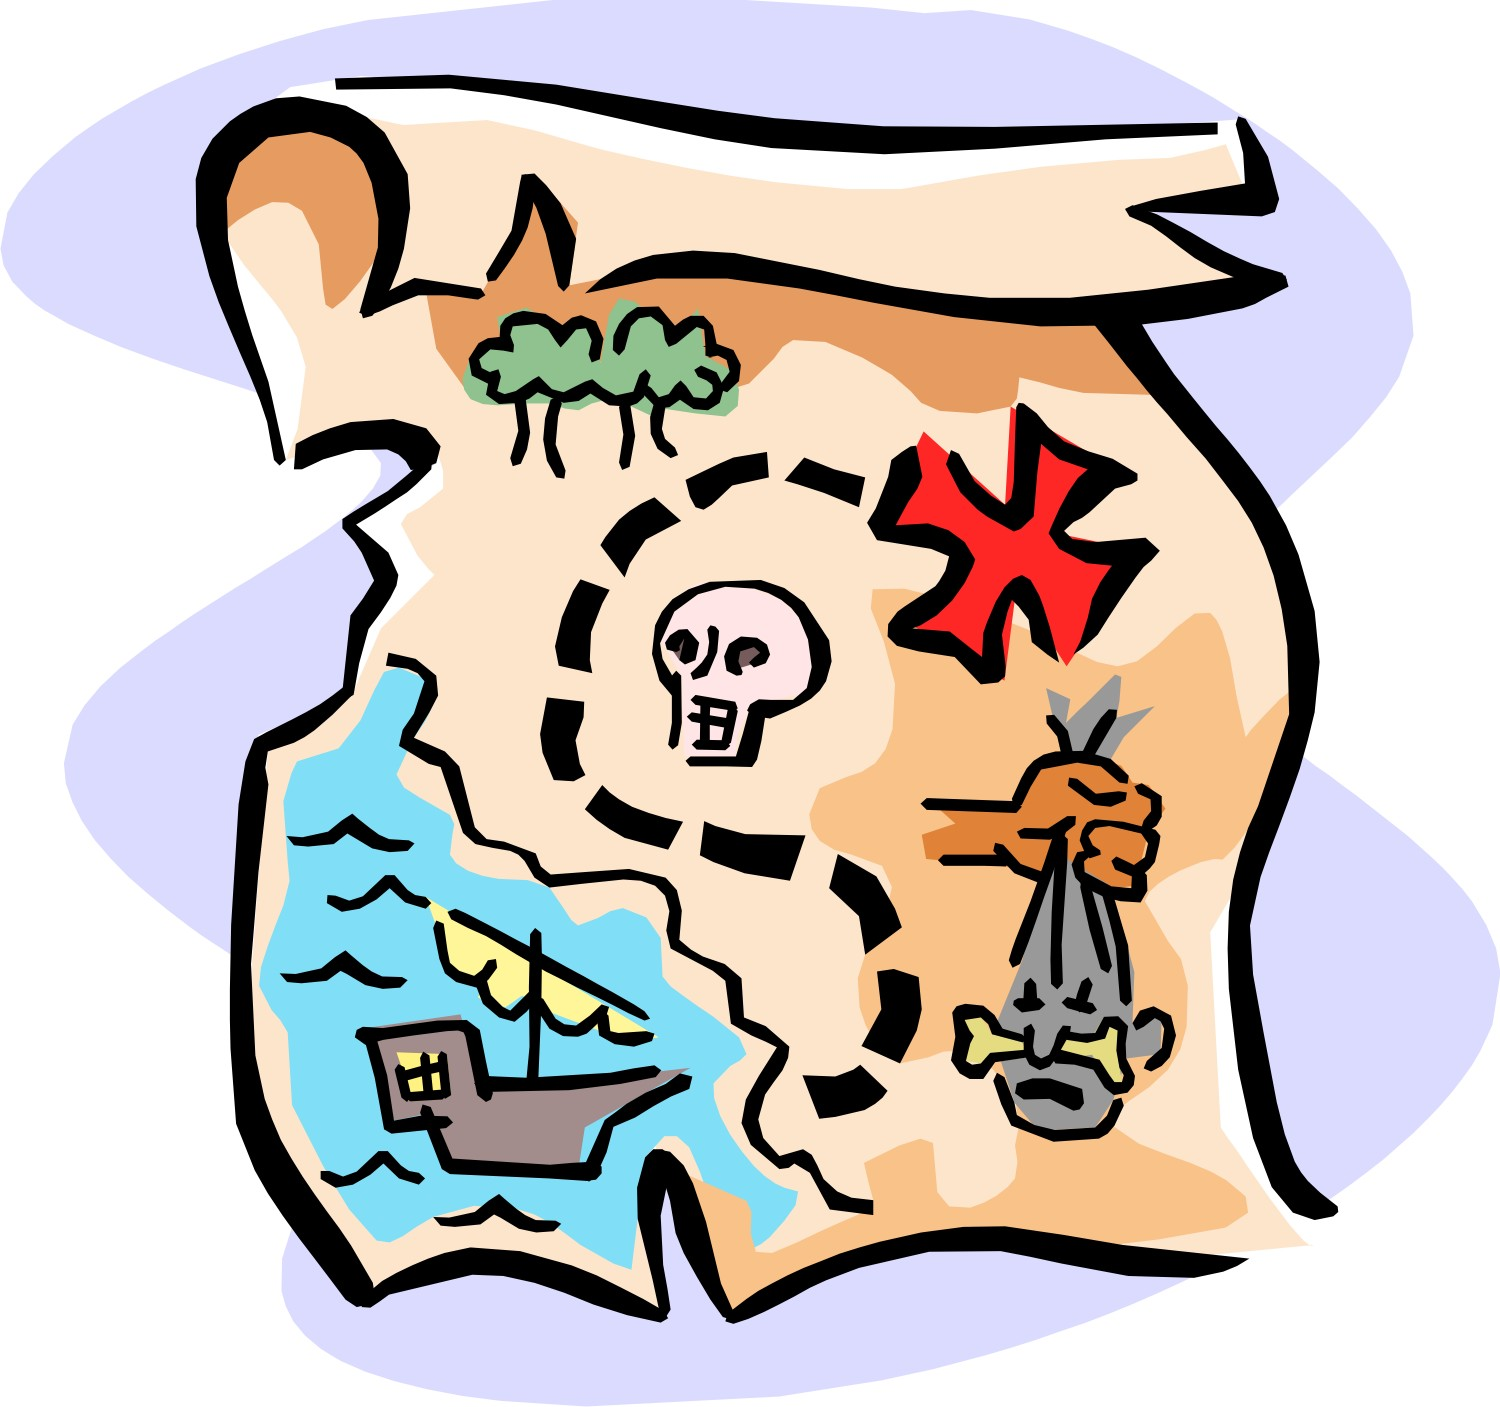 Dig clipart treasure hunting. Free hunt cliparts download